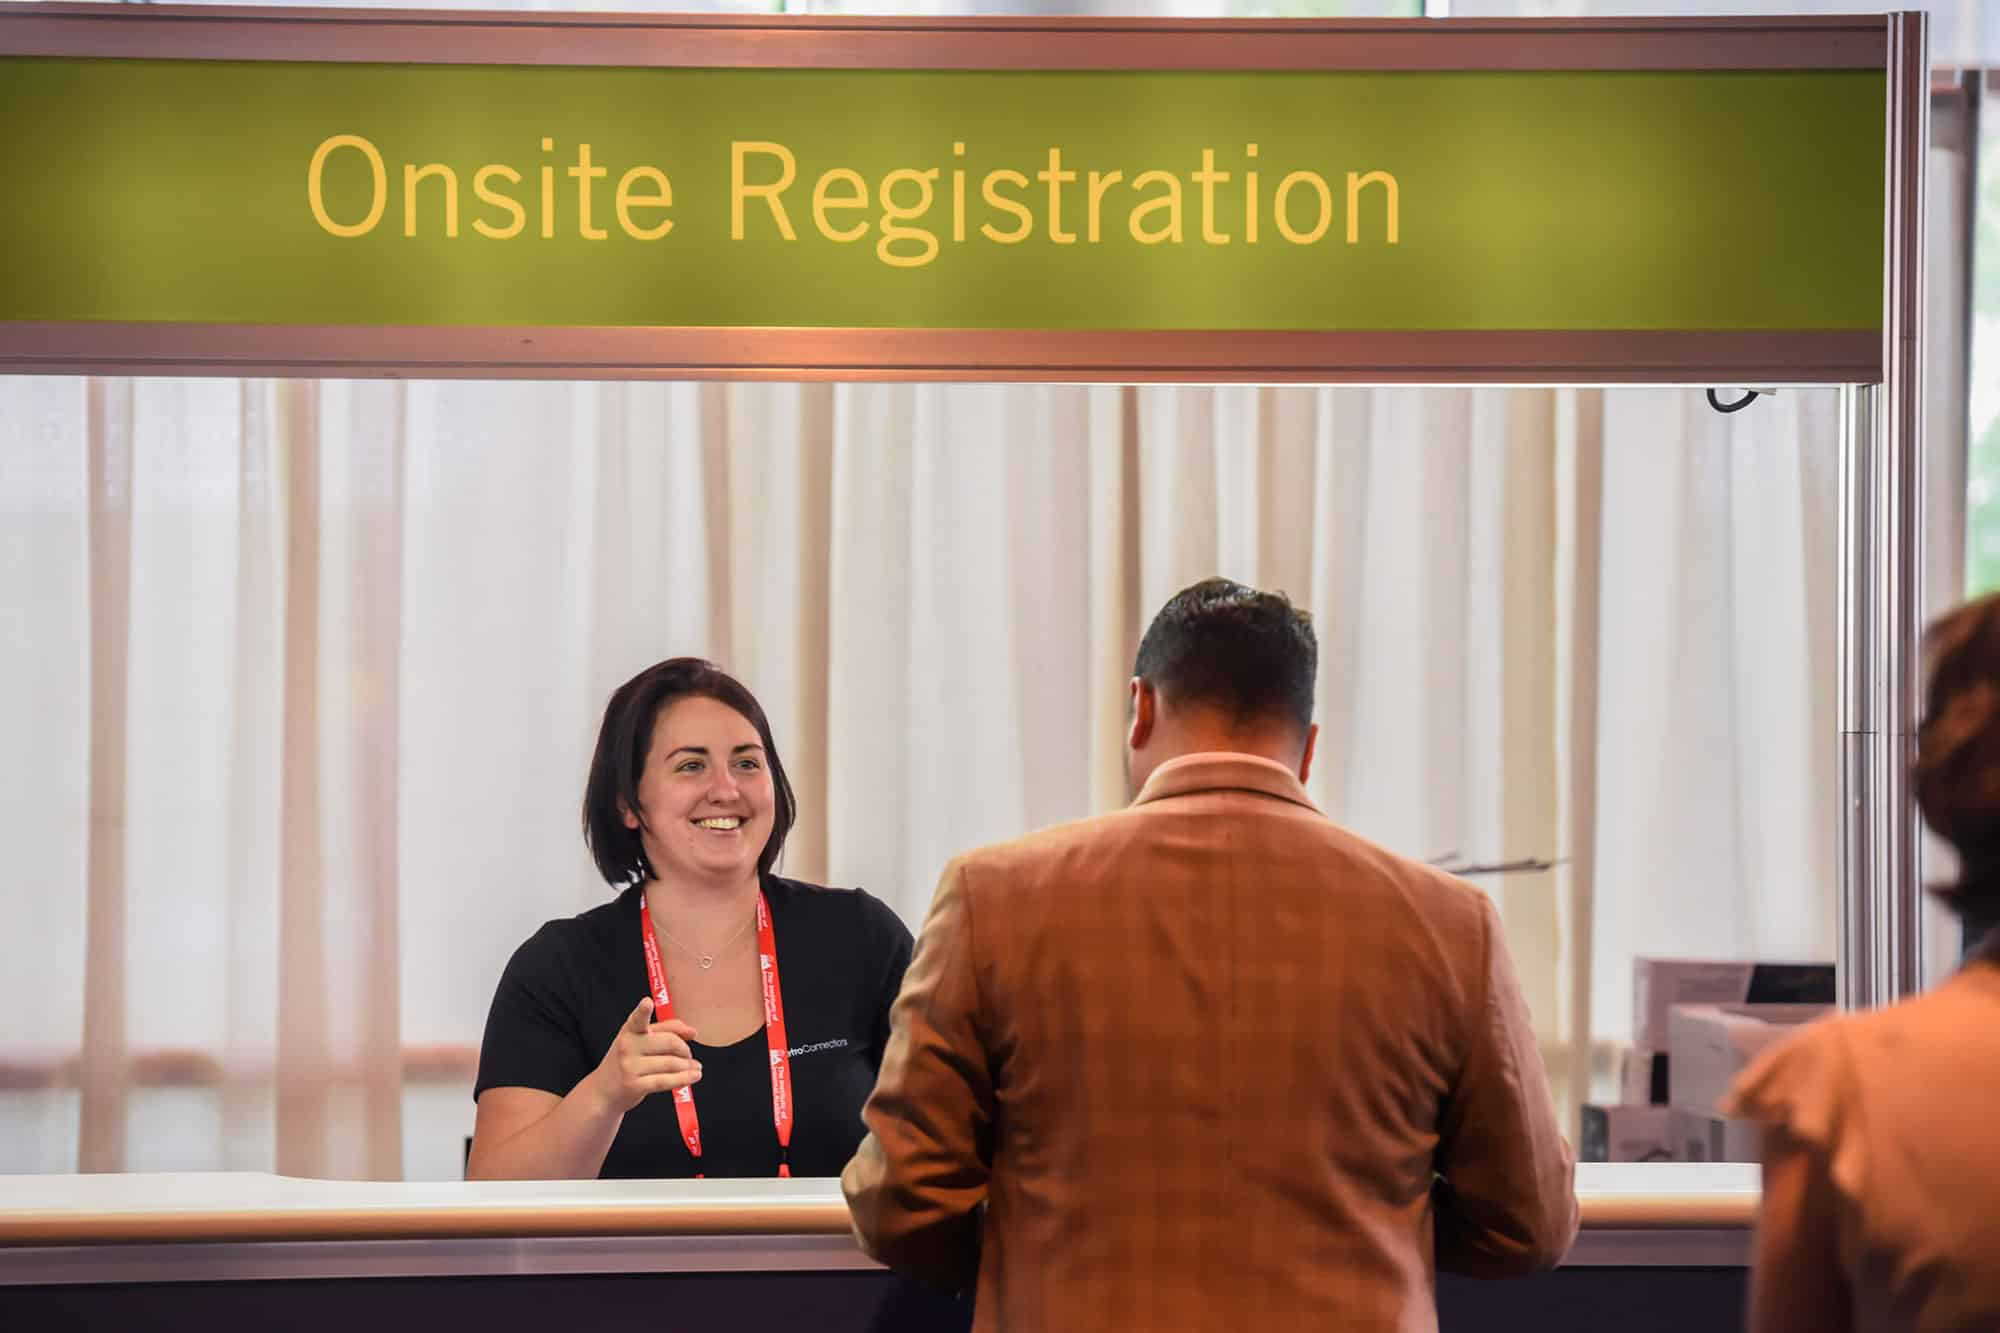 Conference Registration Services